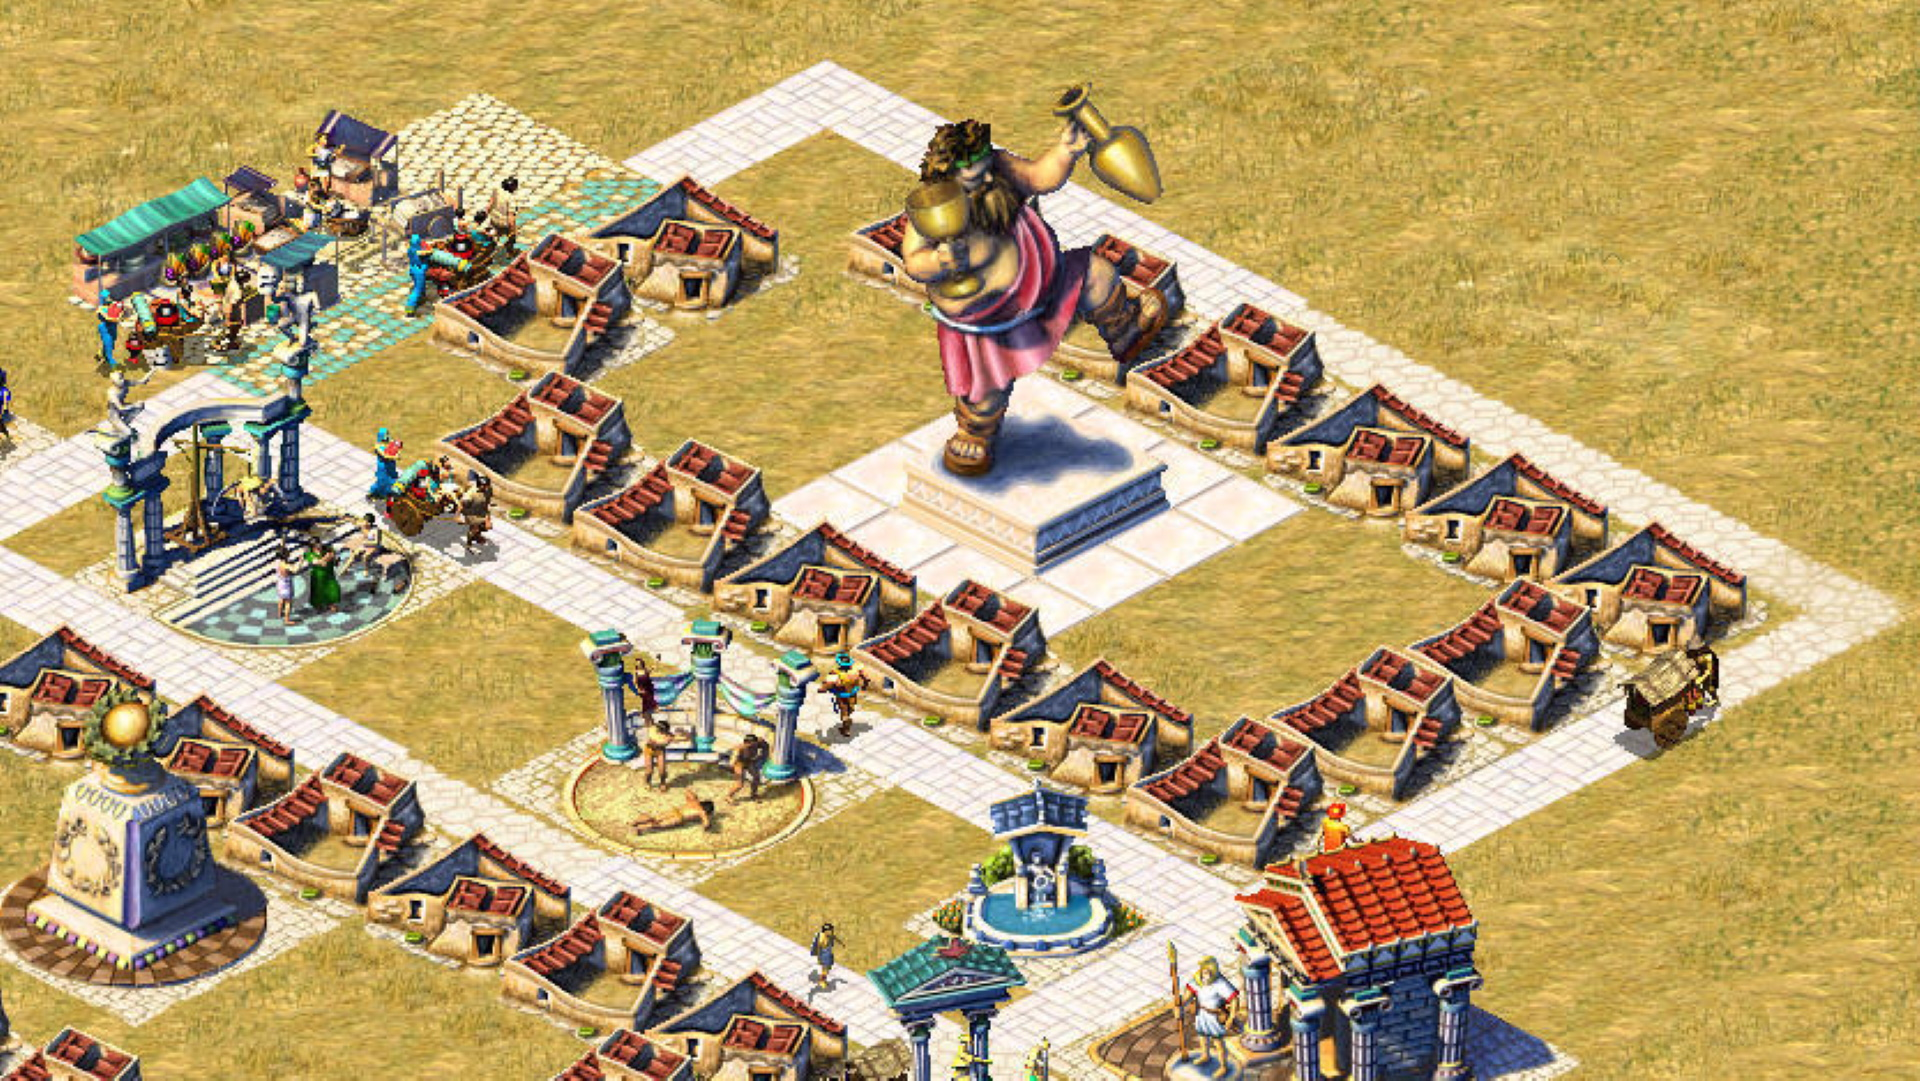 A screenshot showing a residential area in Zeus: Master of Olympus centred around a huge statue of Bacchus the wine god.